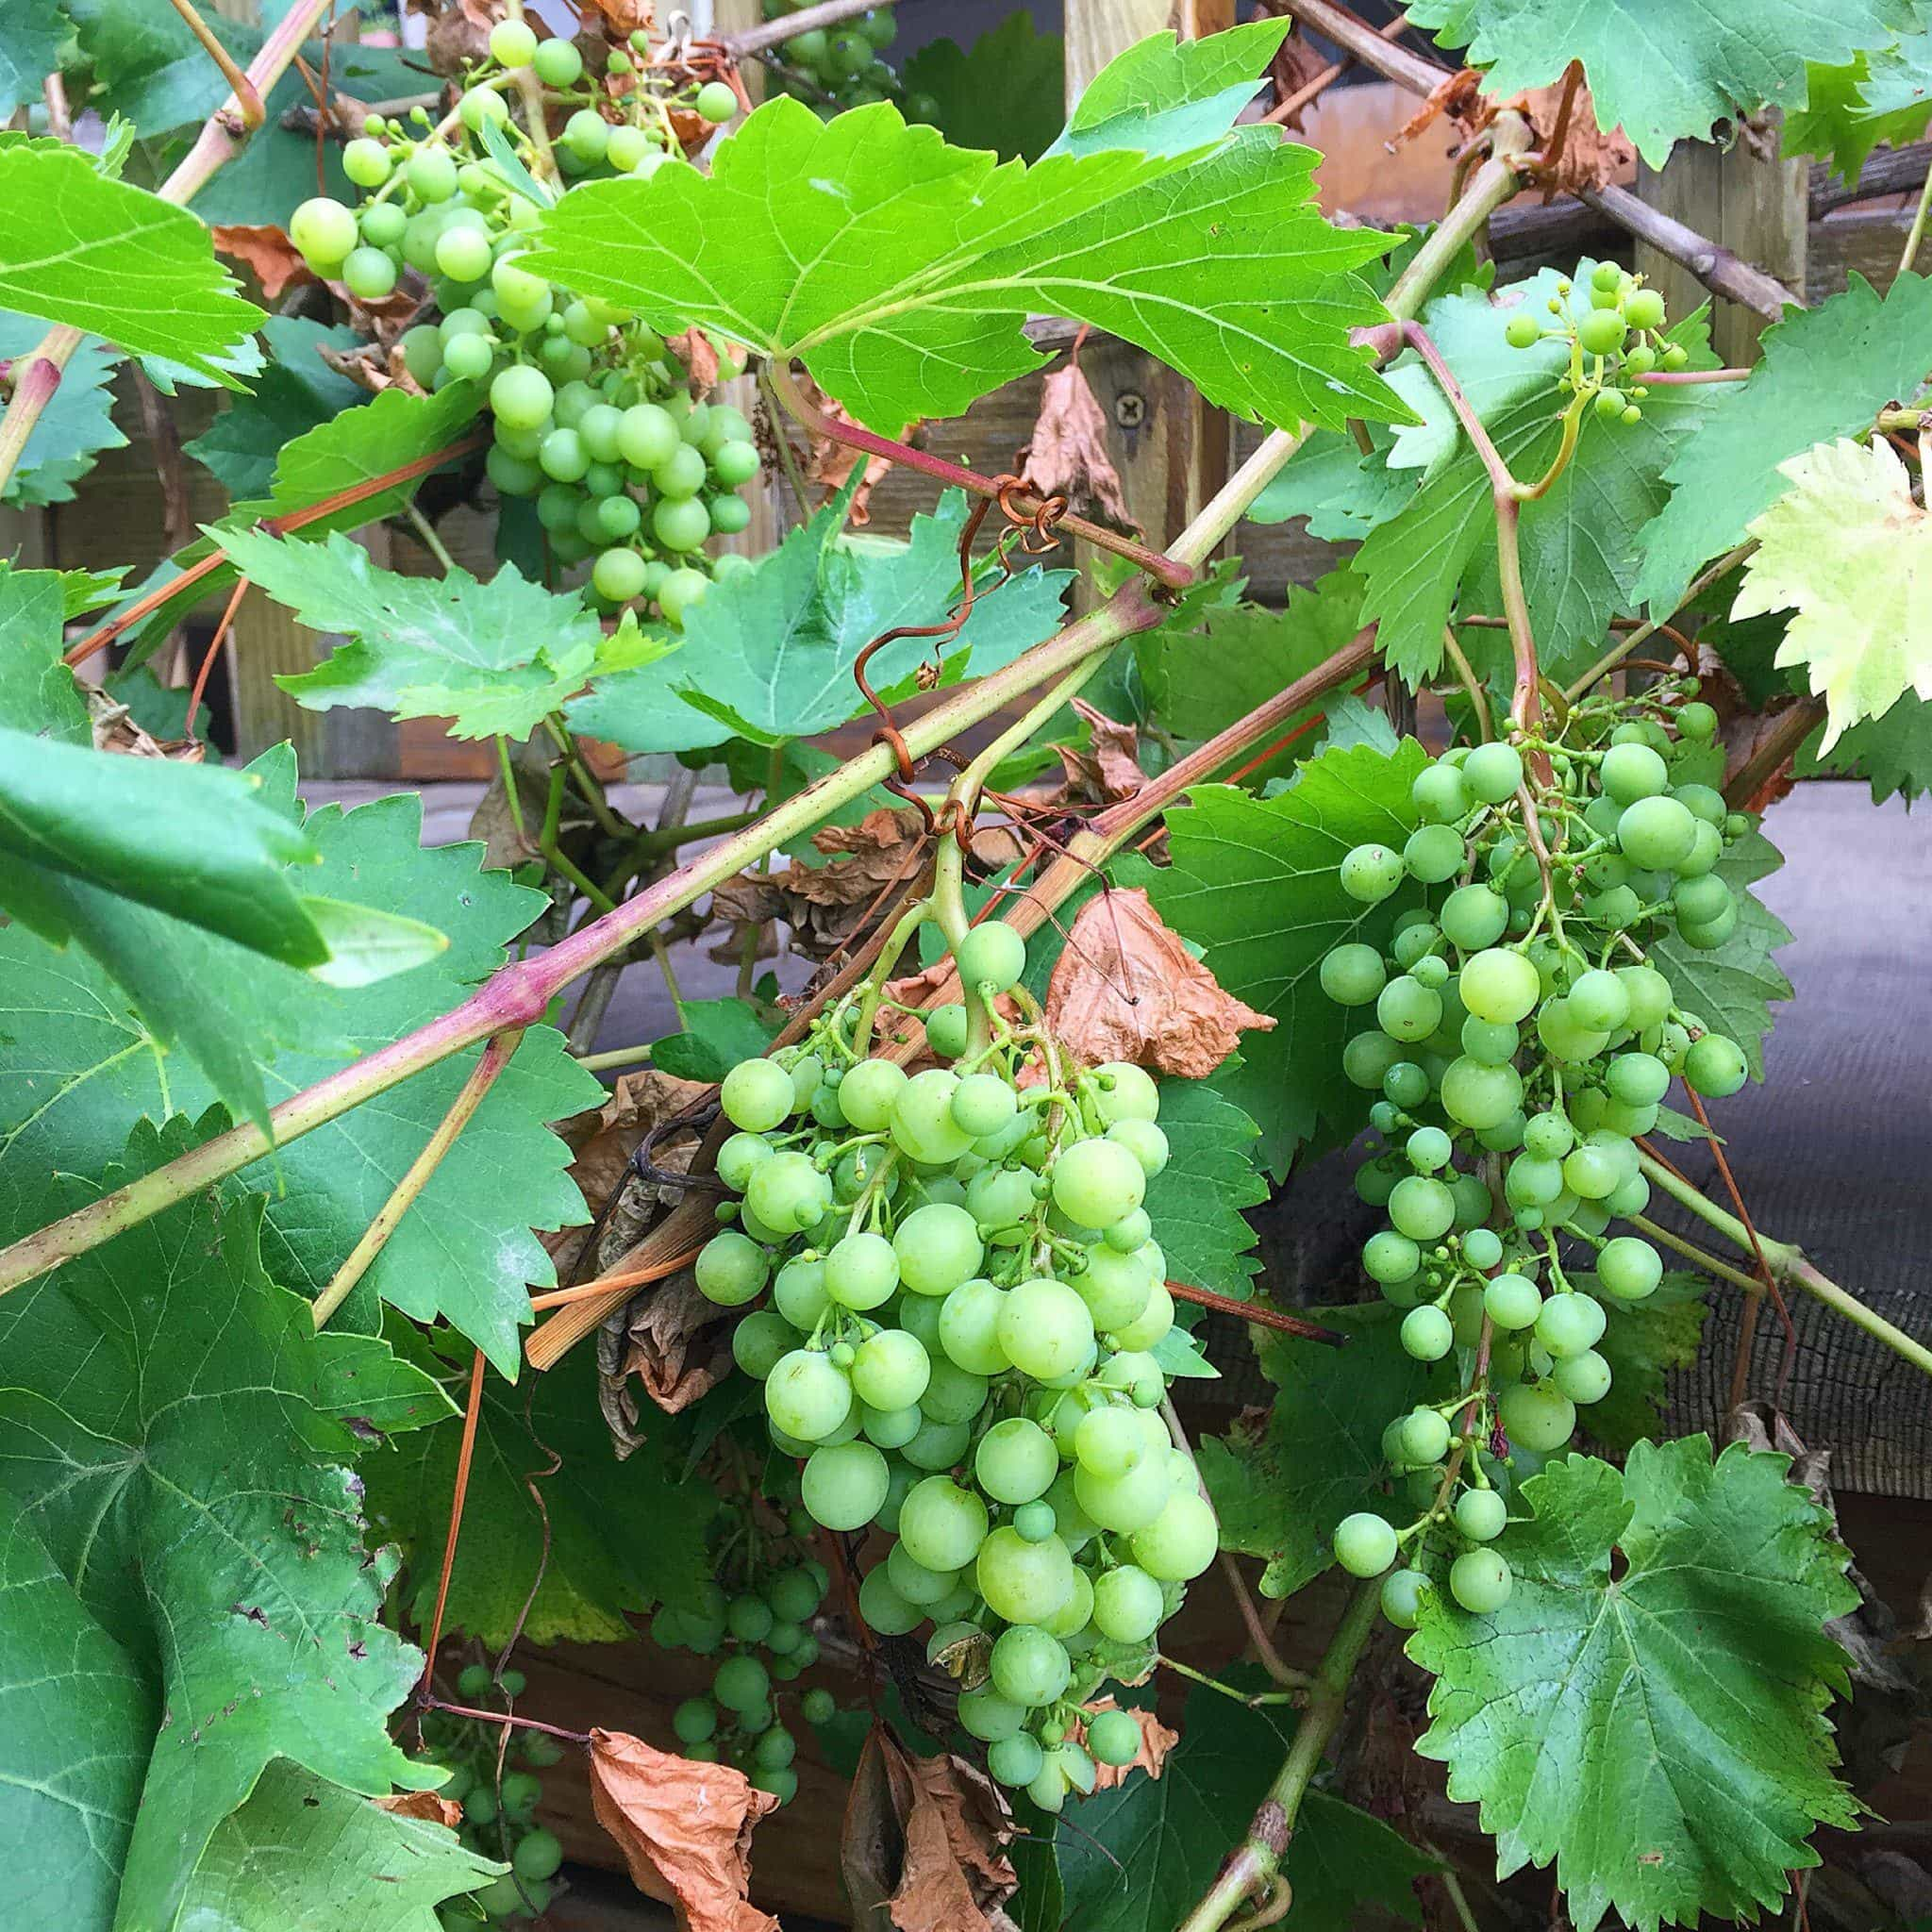 Green grapes on the vine at Leaping Lamb Farm